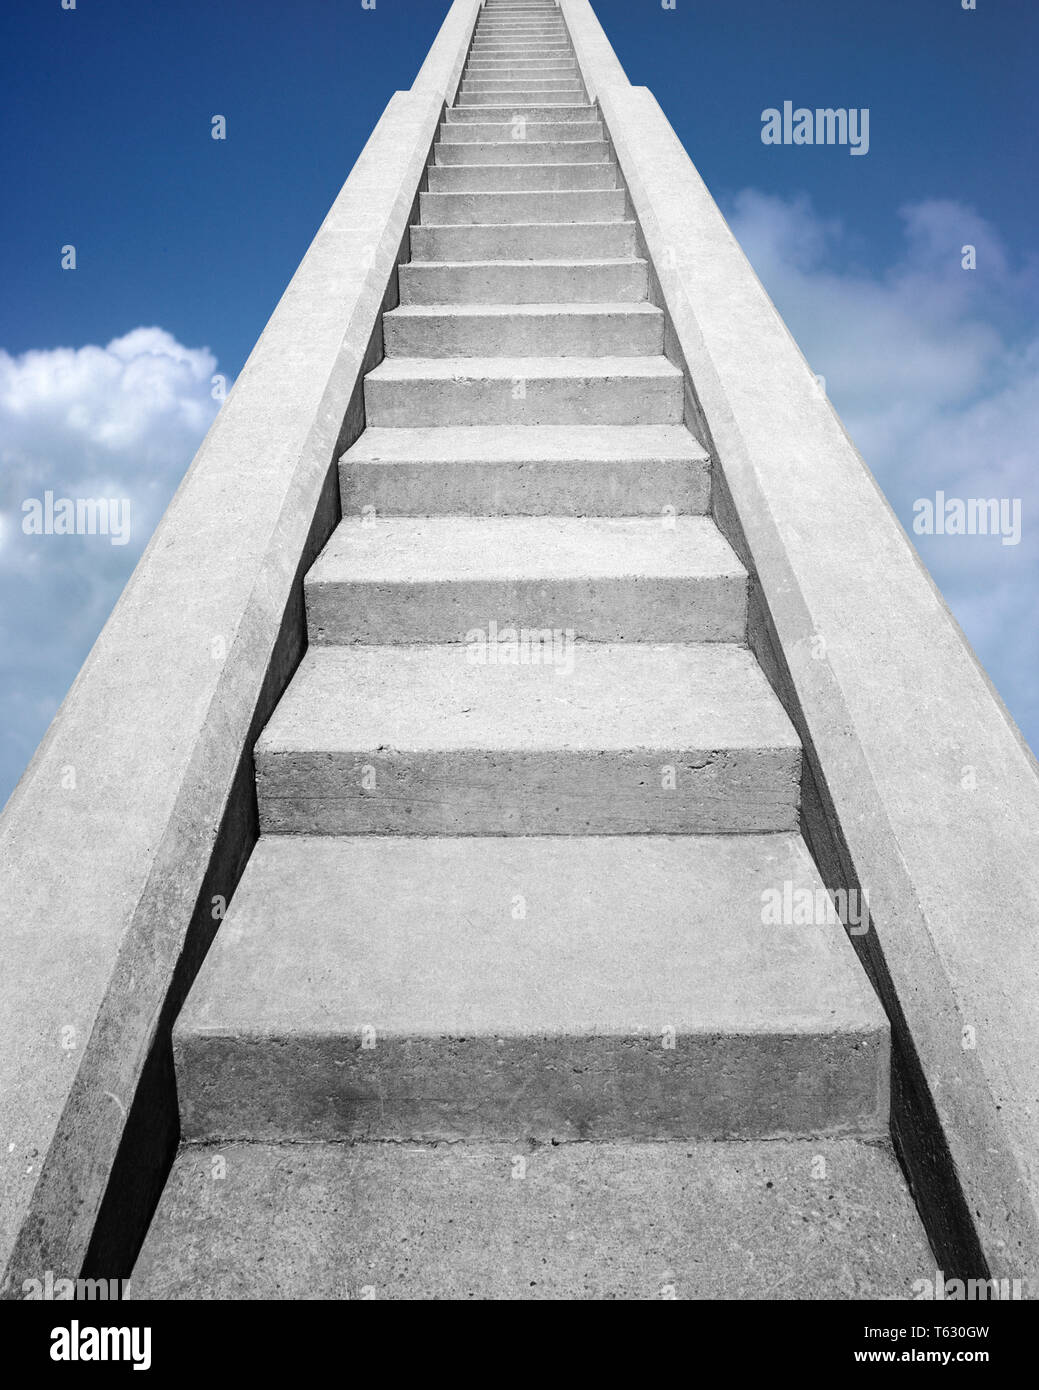 VIEW AT BOTTOM OF SET OF CONCRETE STAIRS  LOOKING UP TO THE TOP INTO A BLUE SKY - s14723f HAR001 HARS VICTORY HEAVENS CHOICE COMPOSITE EXTERIOR LOW ANGLE STAIR DIRECTION HEAVEN UP STAIRCASE STAIRWAY CONCEPT CONNECTION CONCEPTUAL STILL LIFE PARADISE STEEP STYLISH FAITHFUL SYMBOLIC CONCEPTS FAITH GROWTH IDEAS LOOKING UP REWARD BELIEF CONCRETE HAR001 OLD FASHIONED REPRESENTATION - Stock Image